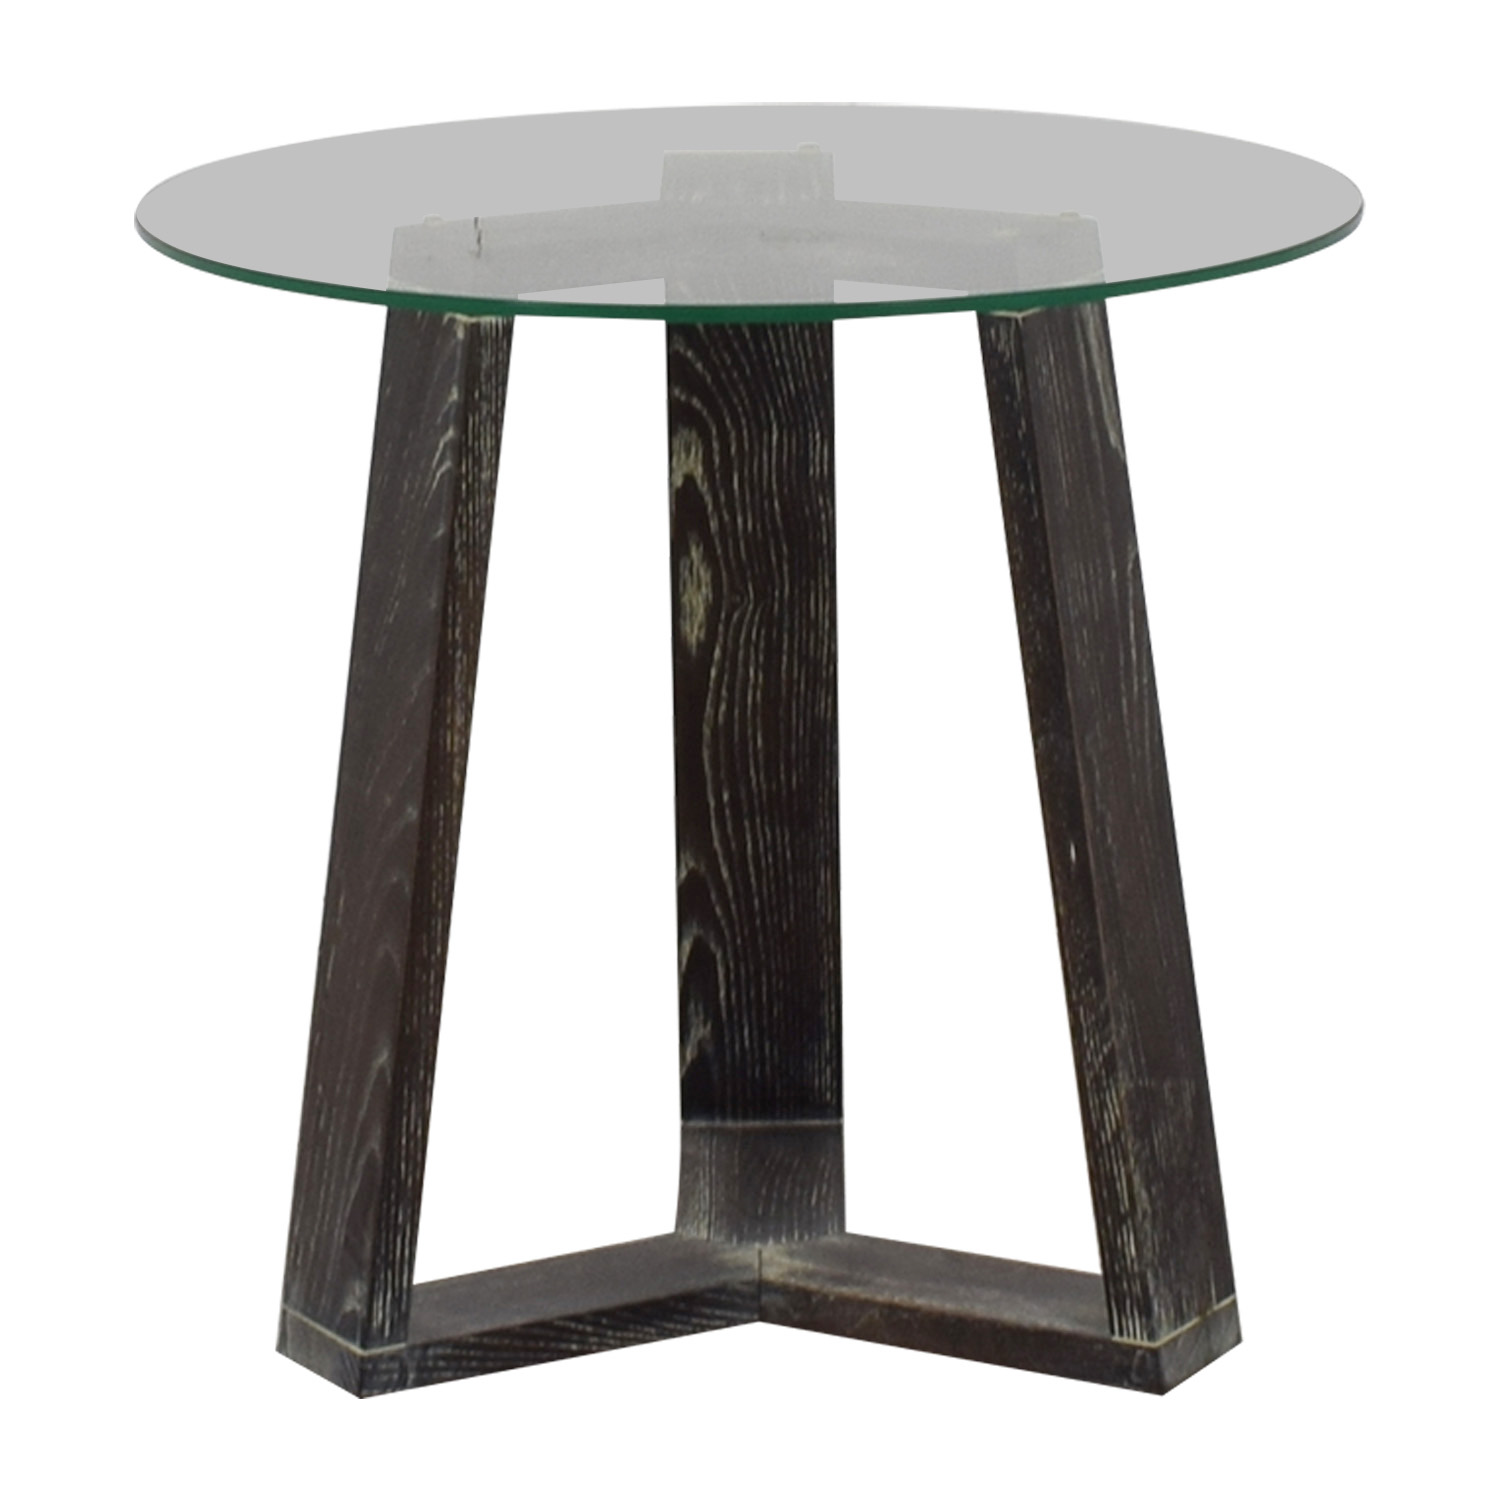 West Elm West Elm Round Glass Side-Table Tables